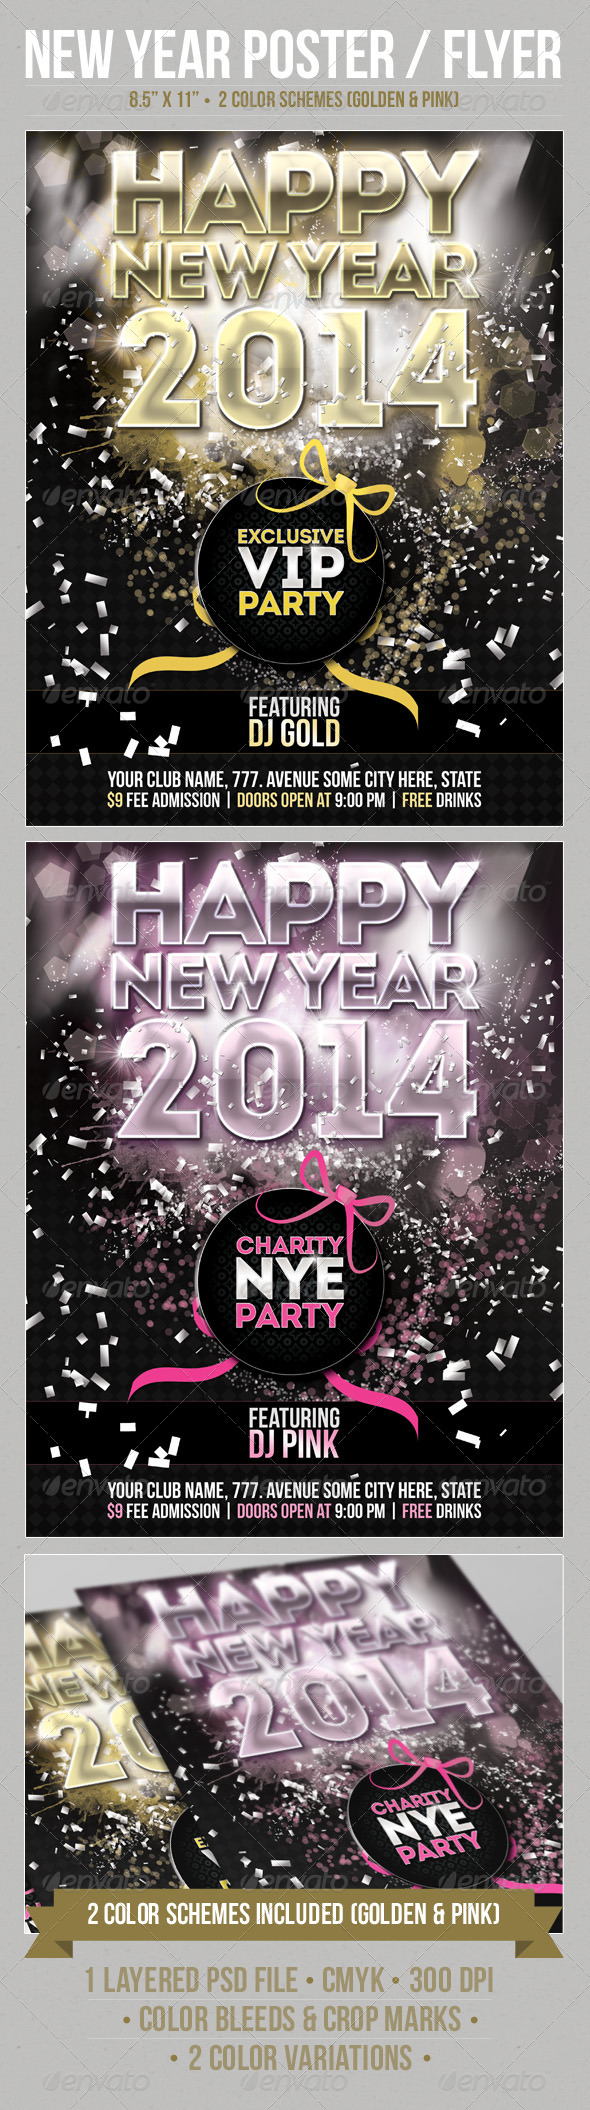 New Year Party Poster Template - Holidays Events